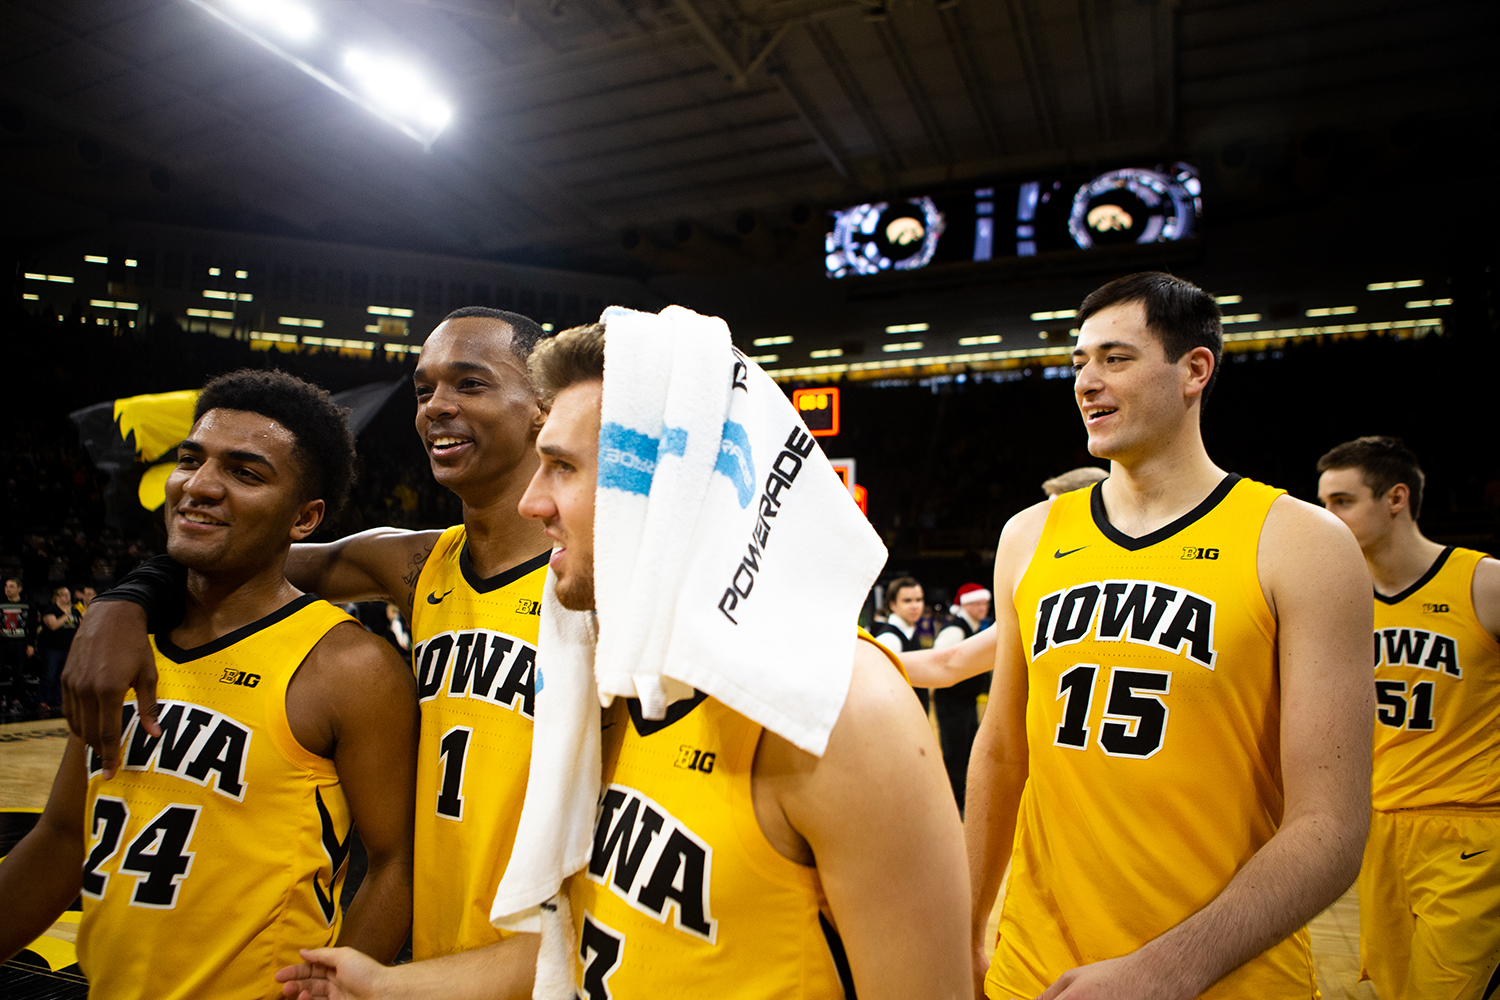 The+players+celebrate+post+victory+during+the+men%27s+basketball+game+against+Savannah+State+at+Carver-Hawkeye+Arena+on+Tuesday%2C+December+22%2C+2018.+The+Hawkeyes+defeated+the+Tigers+110-64.